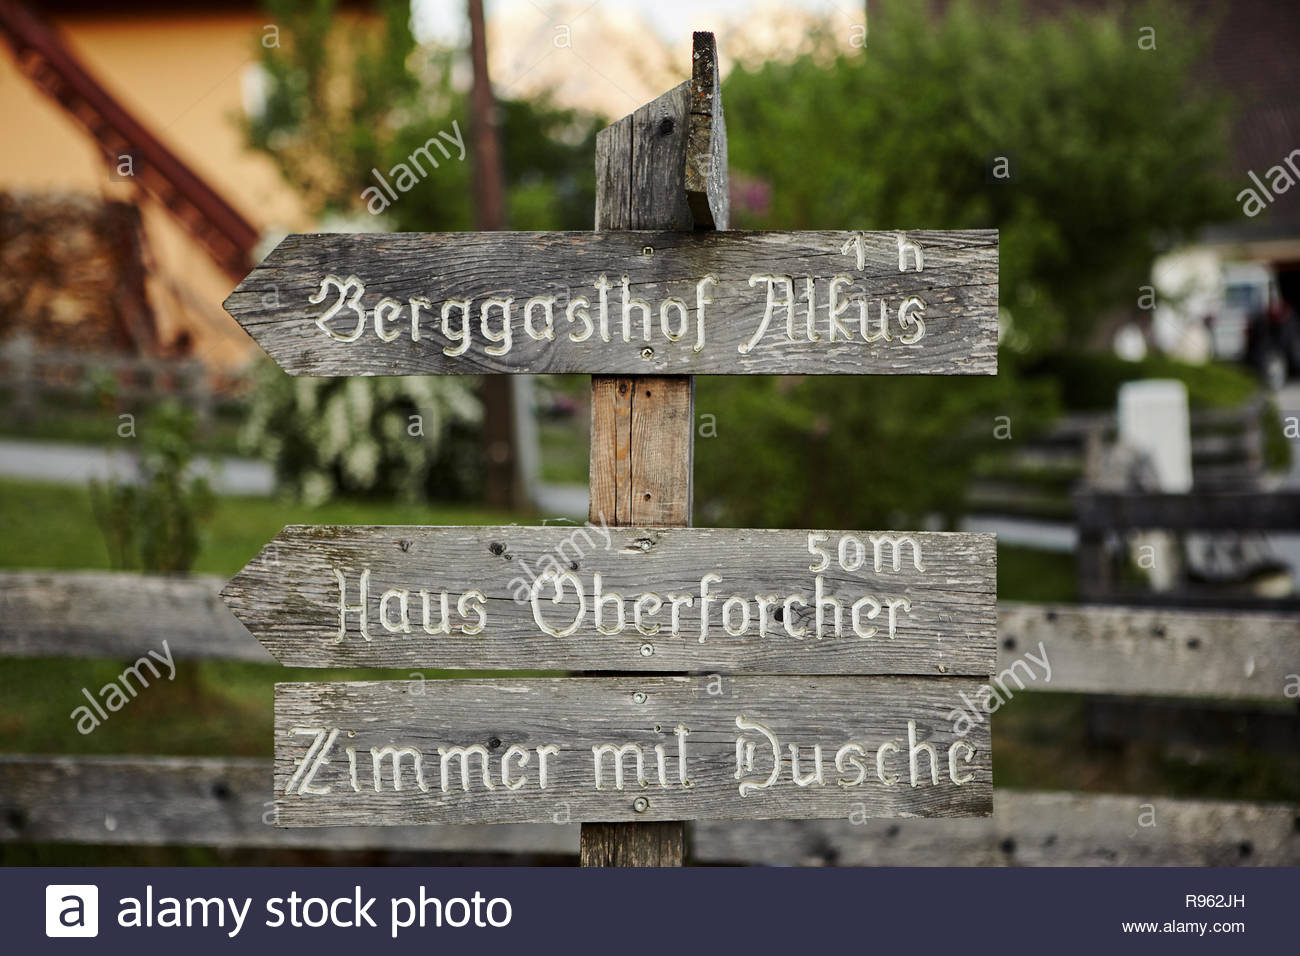 Ainet, Tyrol, Austria May 10, 2011: Wooden sign post - Stock Image